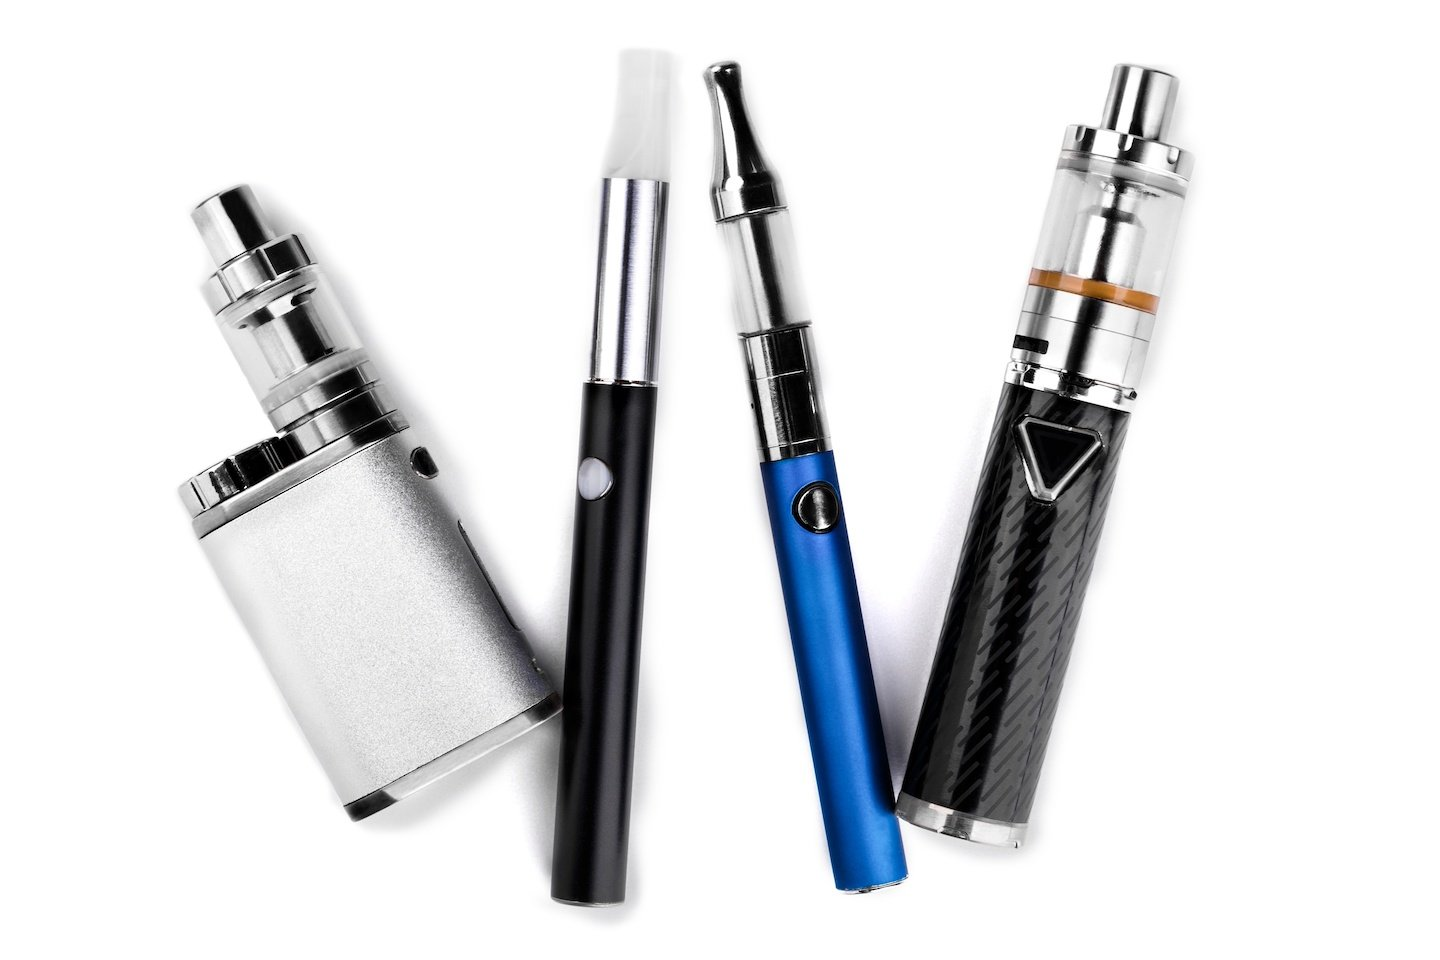 modern electronic cigarettes or vaping devices